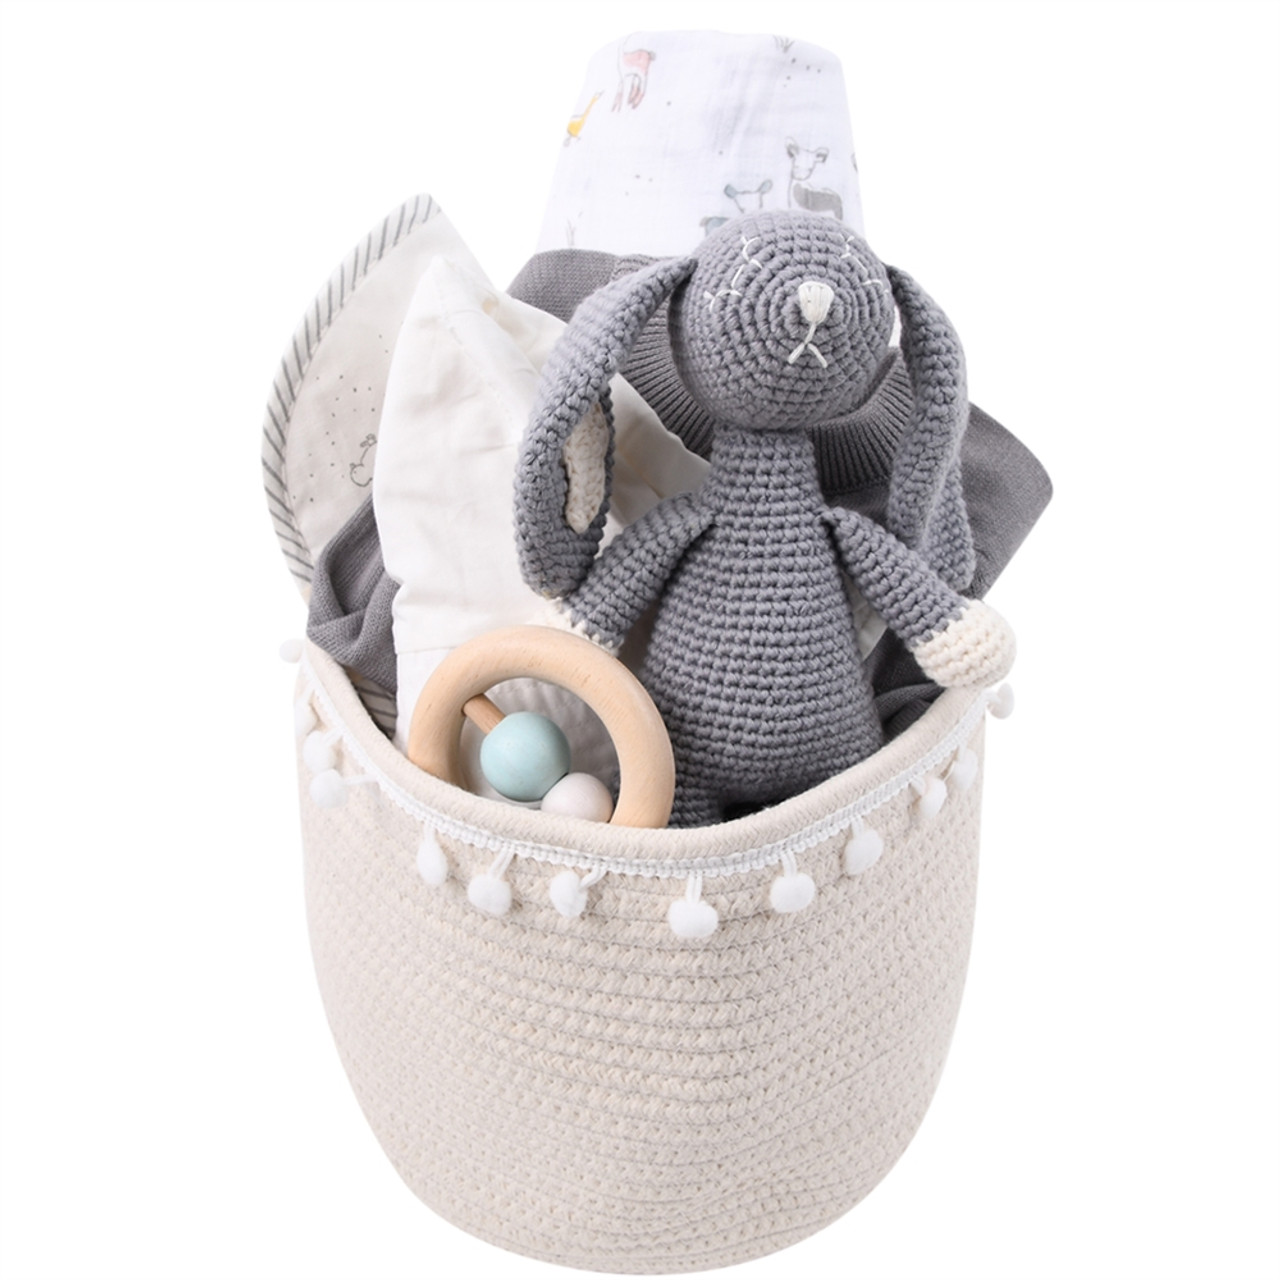 Bunny Gift Basket for Baby - Just Hatched